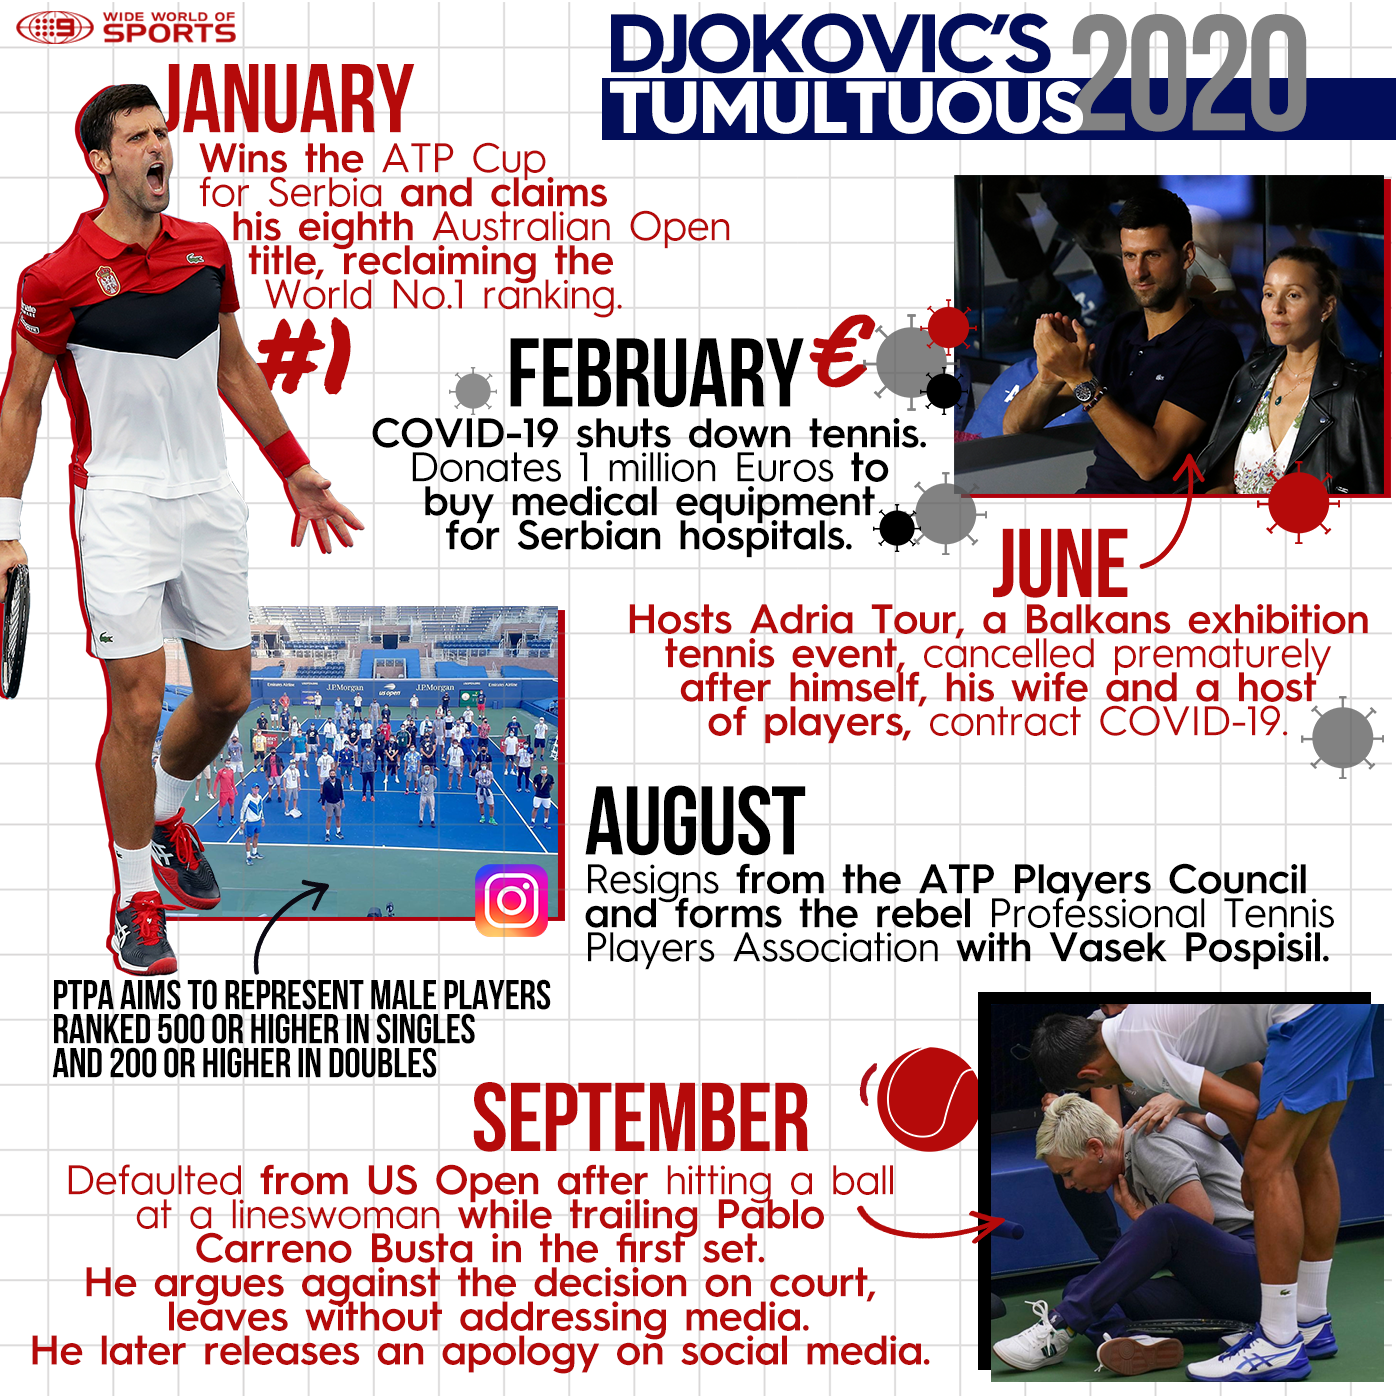 Novak Djokovic Us Open Default Kicked Out For Hitting Lineswoman With Ball World No 1 Ejected